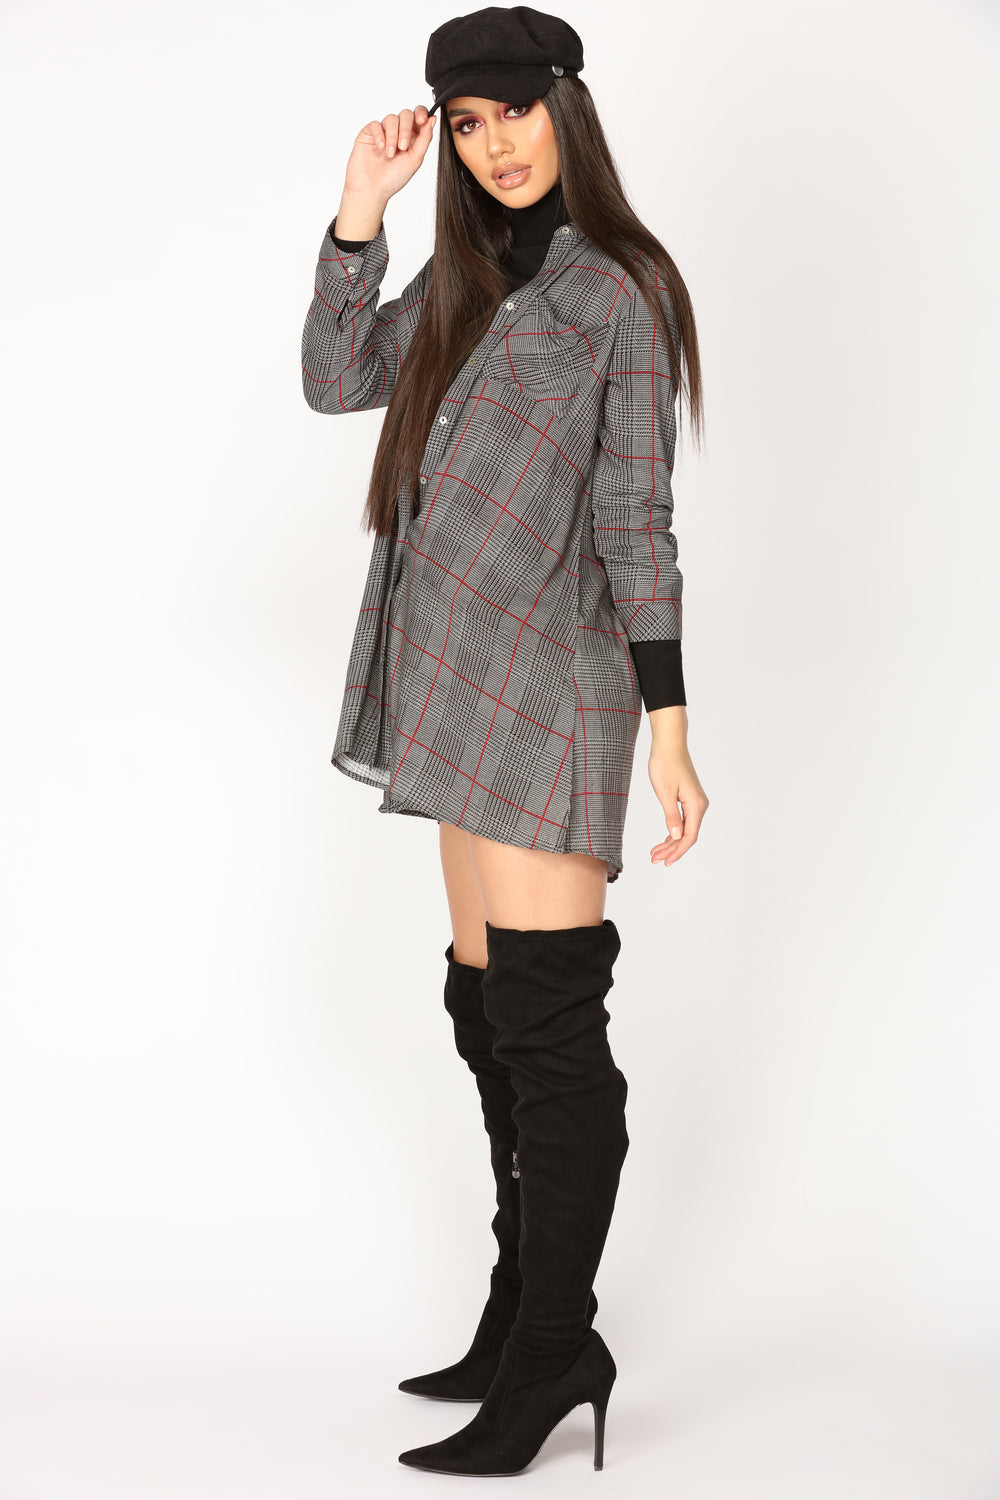 Shayna Plaid Tunic - Black/White